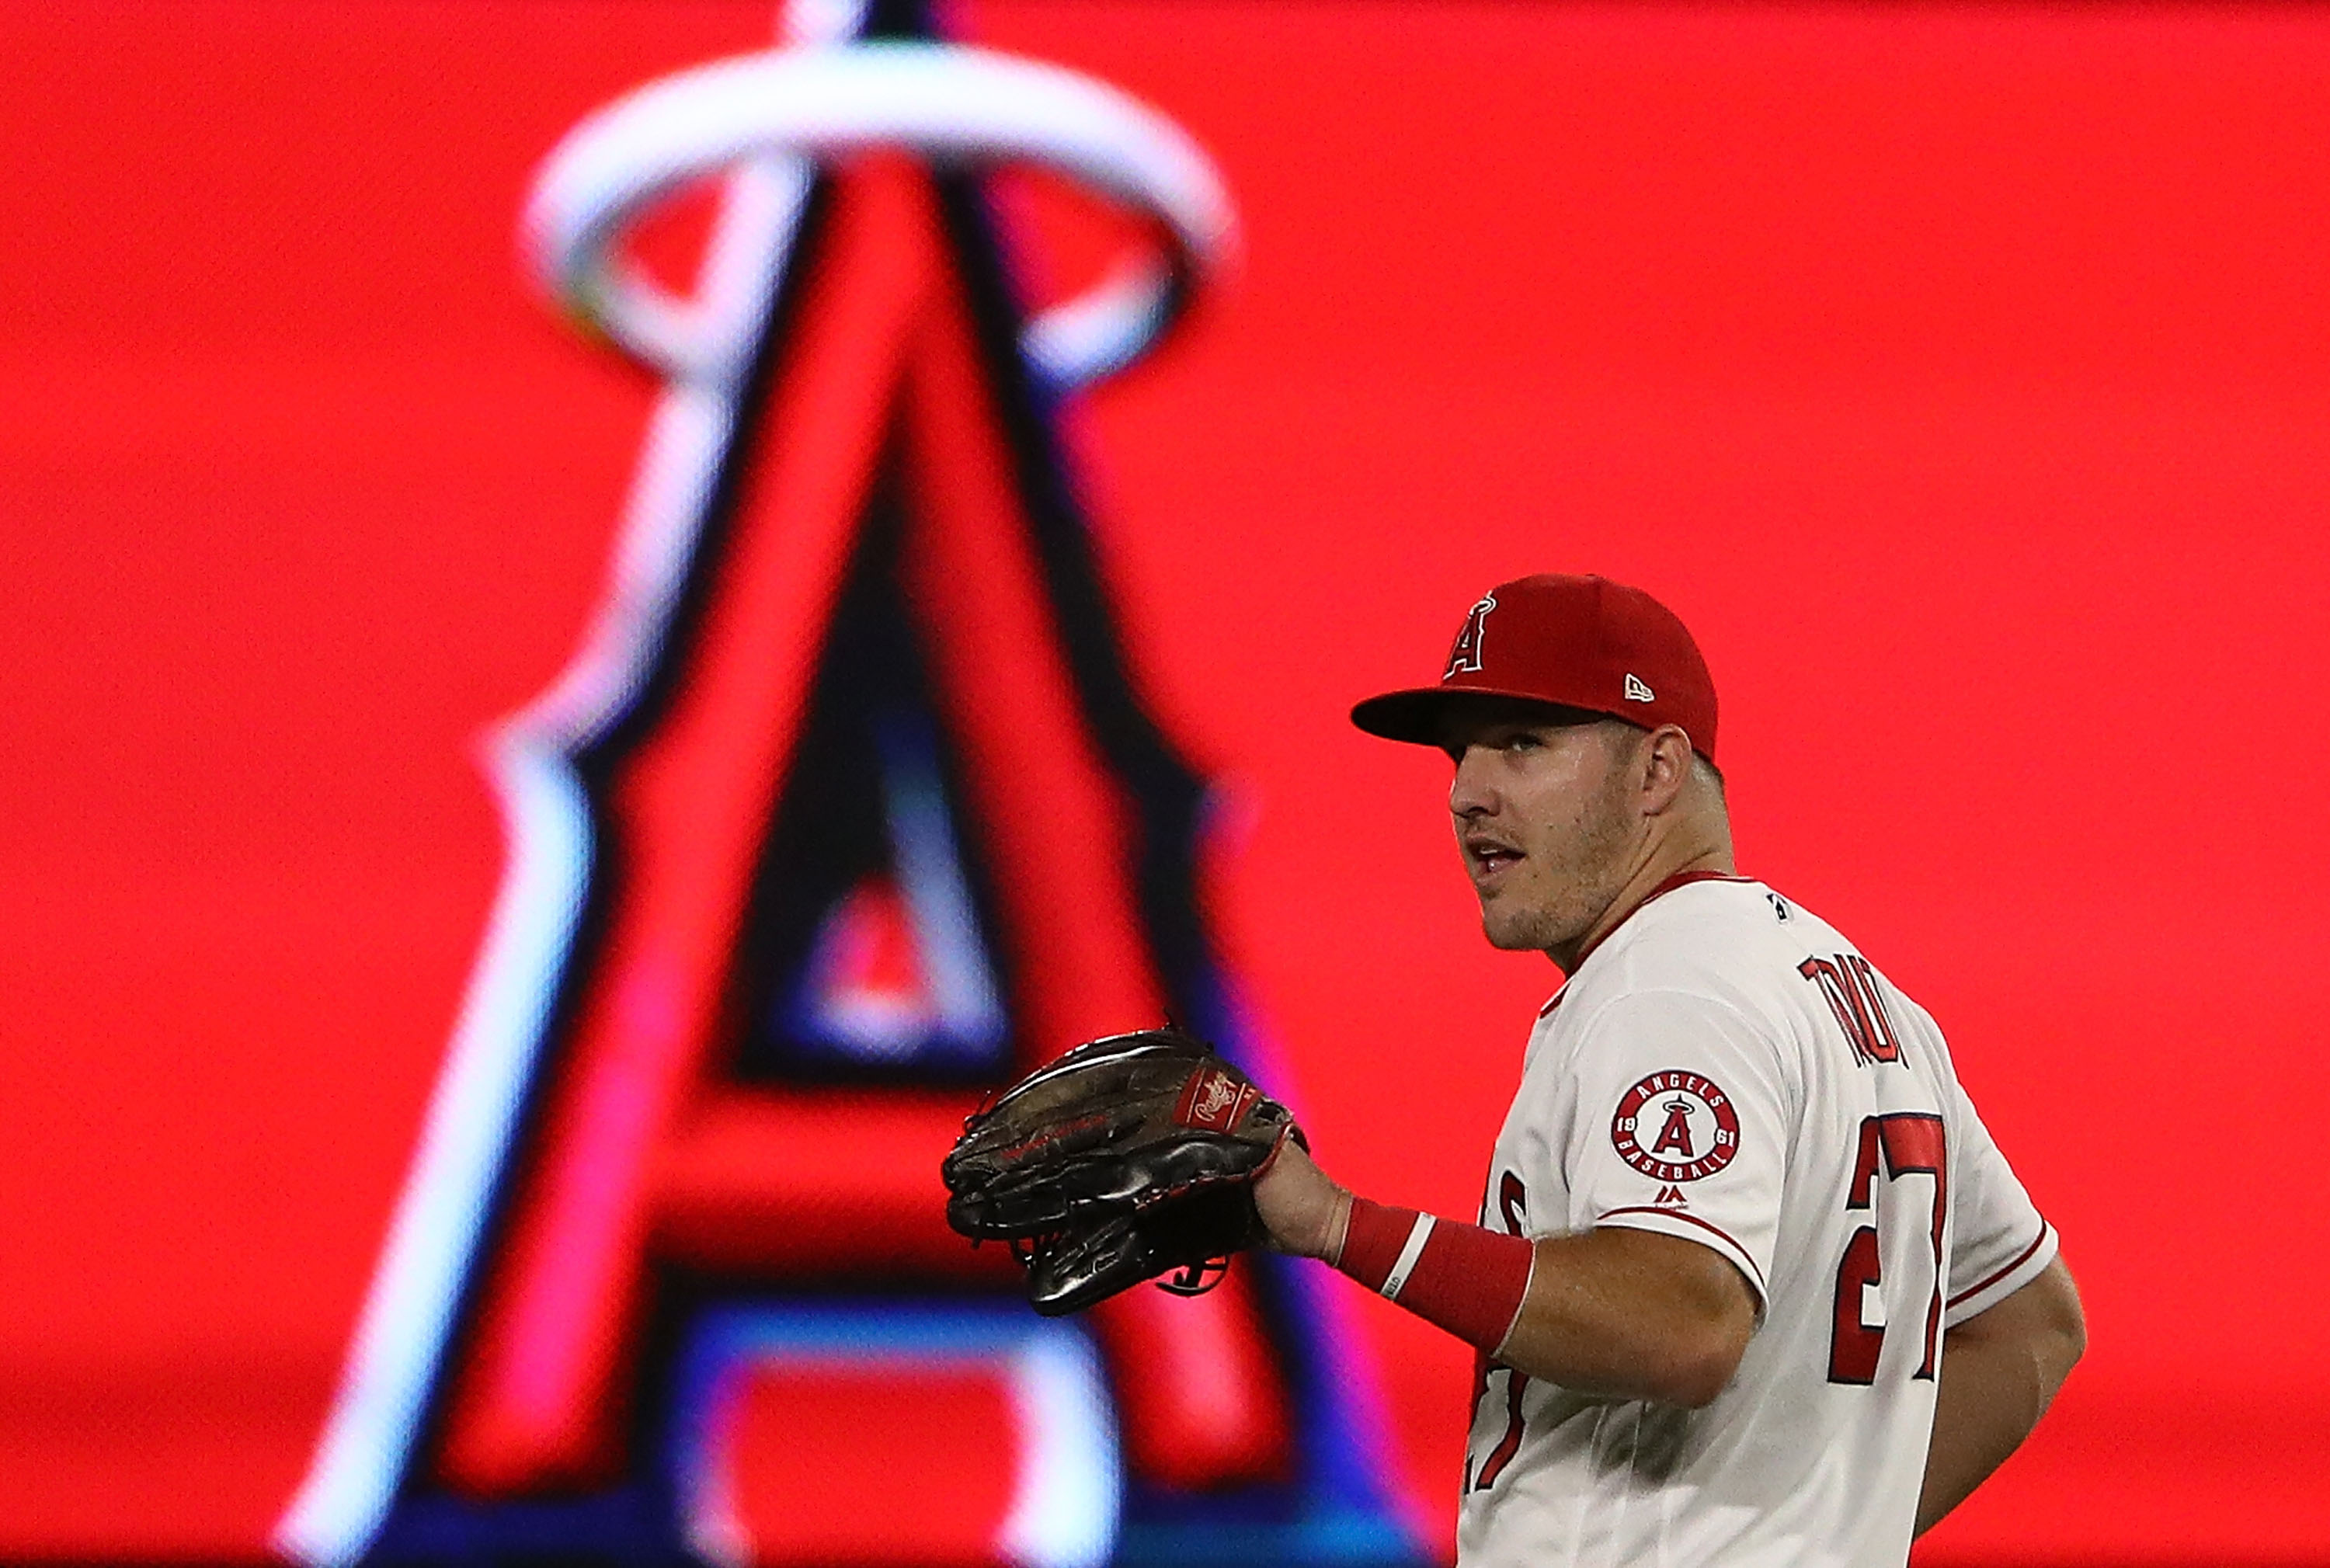 Angels star Mike Trout rips MLB for Astros cheating scandal, said he 'lost respect' for players